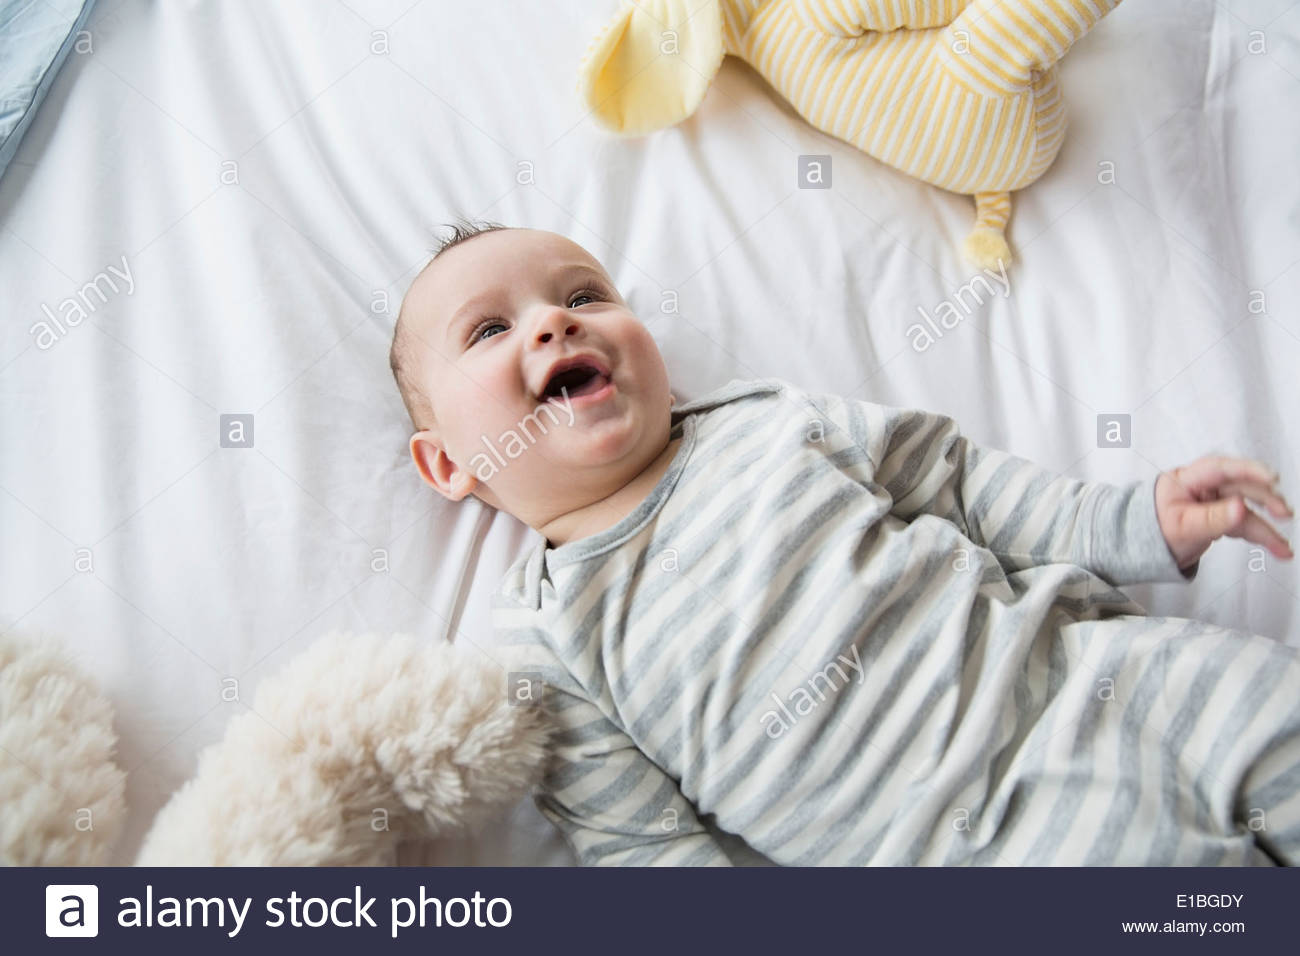 Laughing baby laying on bed - Stock Image